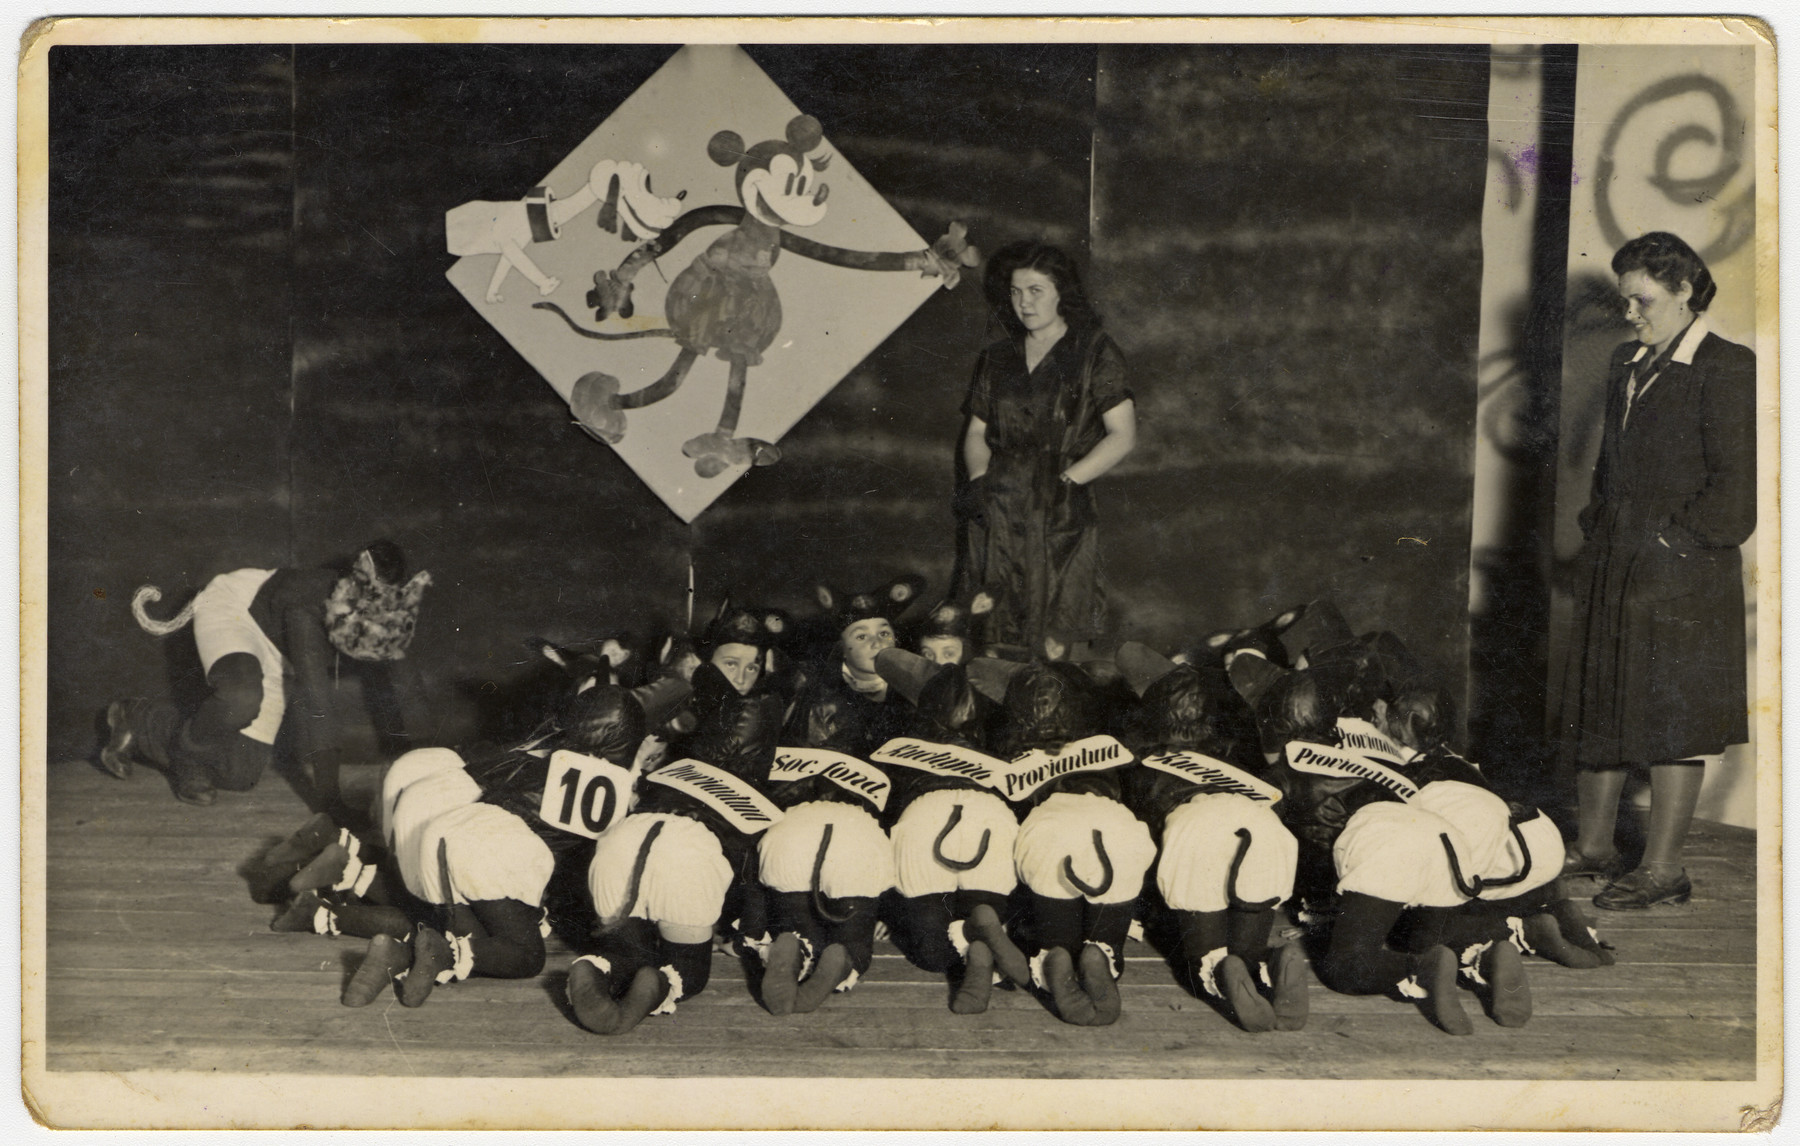 Children dressed as mice perform a play about Mickey Mouse in the Novaky labor camp.  Among those pictured is Mira Menzer (second row, far right).